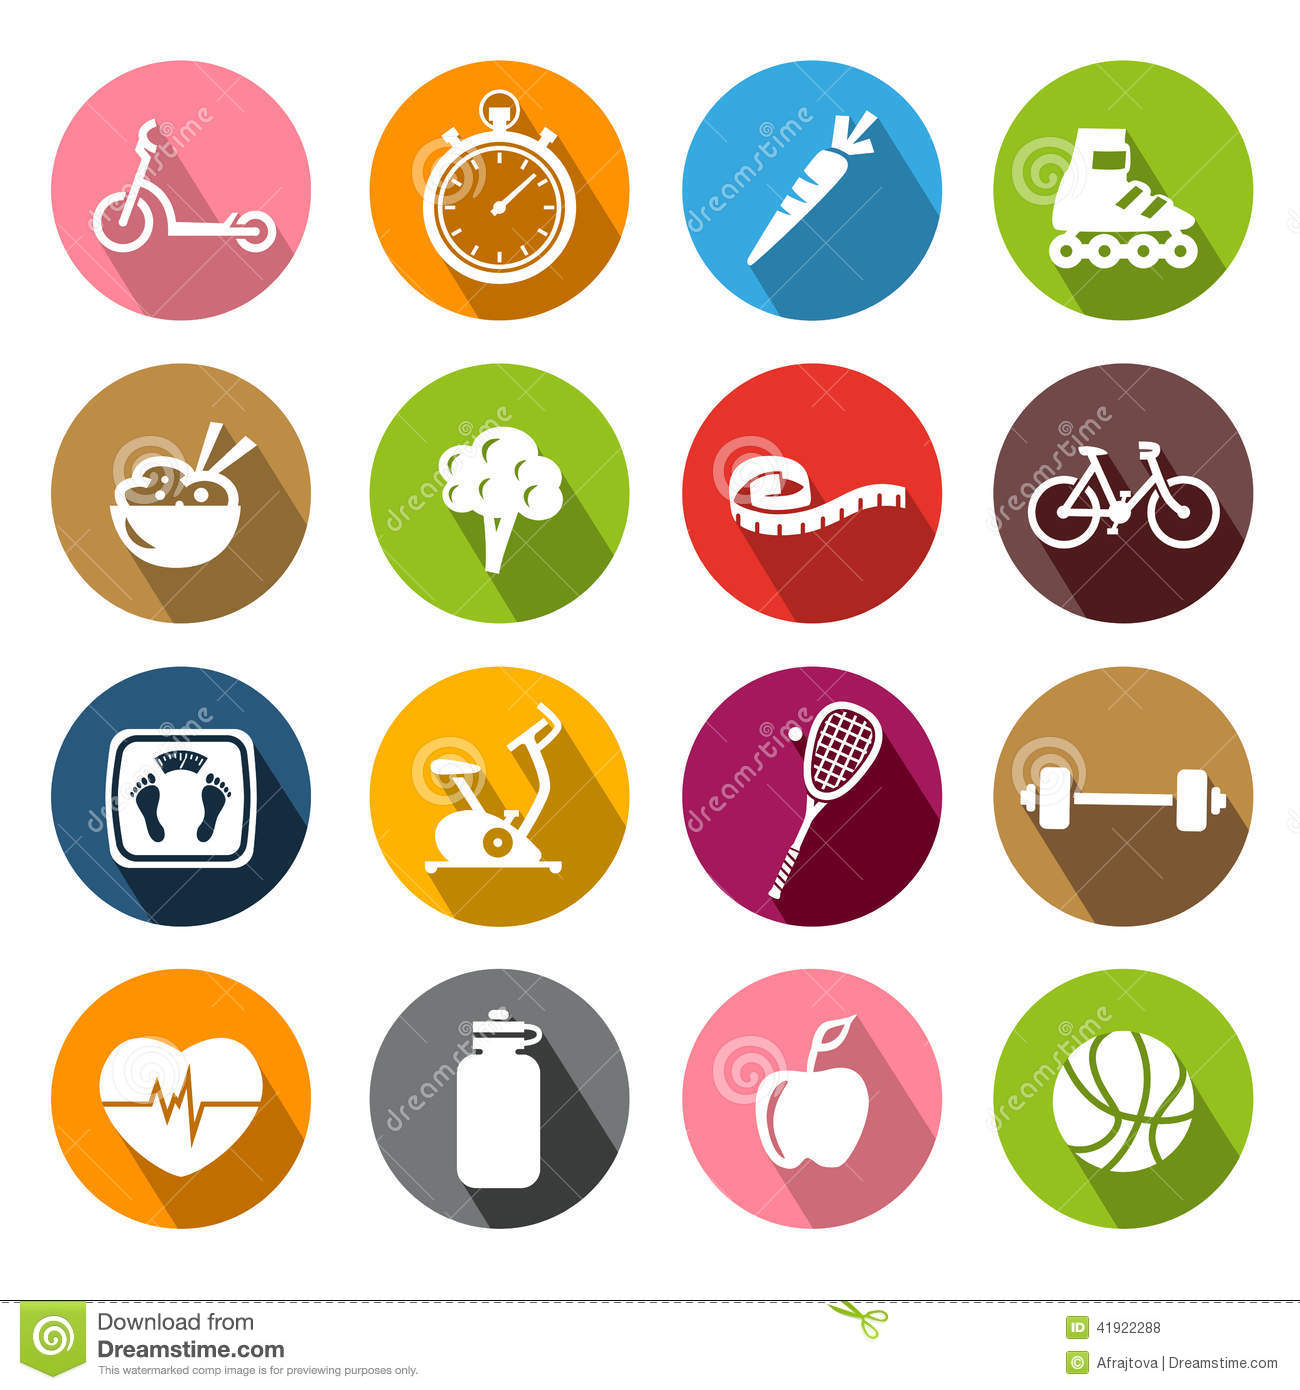 clip art royalty free download Healthy icons panda free. Lifestyle clipart symbol.